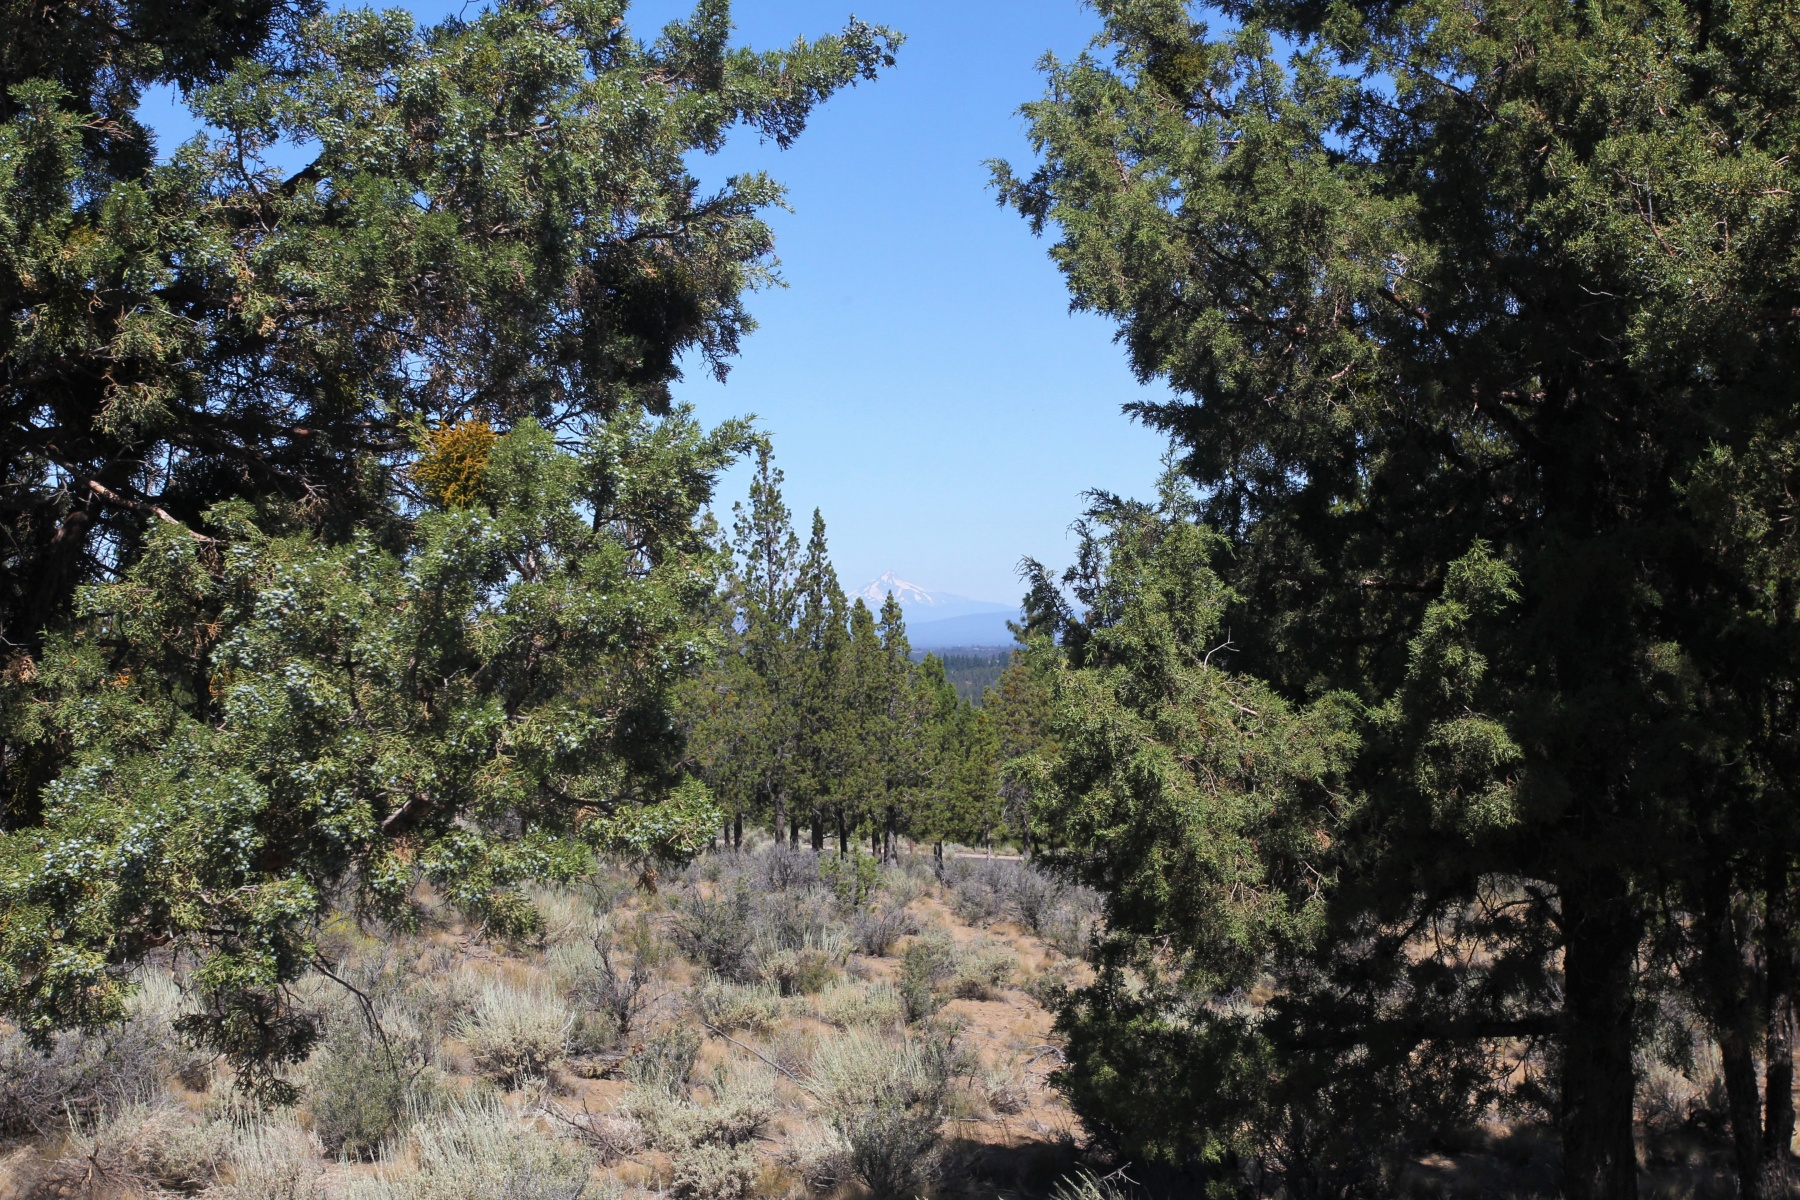 Land for Sale at 1489 NW Puccoon Court Lot 128, BEND 1489 NW Puccoon Ct Lot 128 Bend, Oregon, 97702 United States